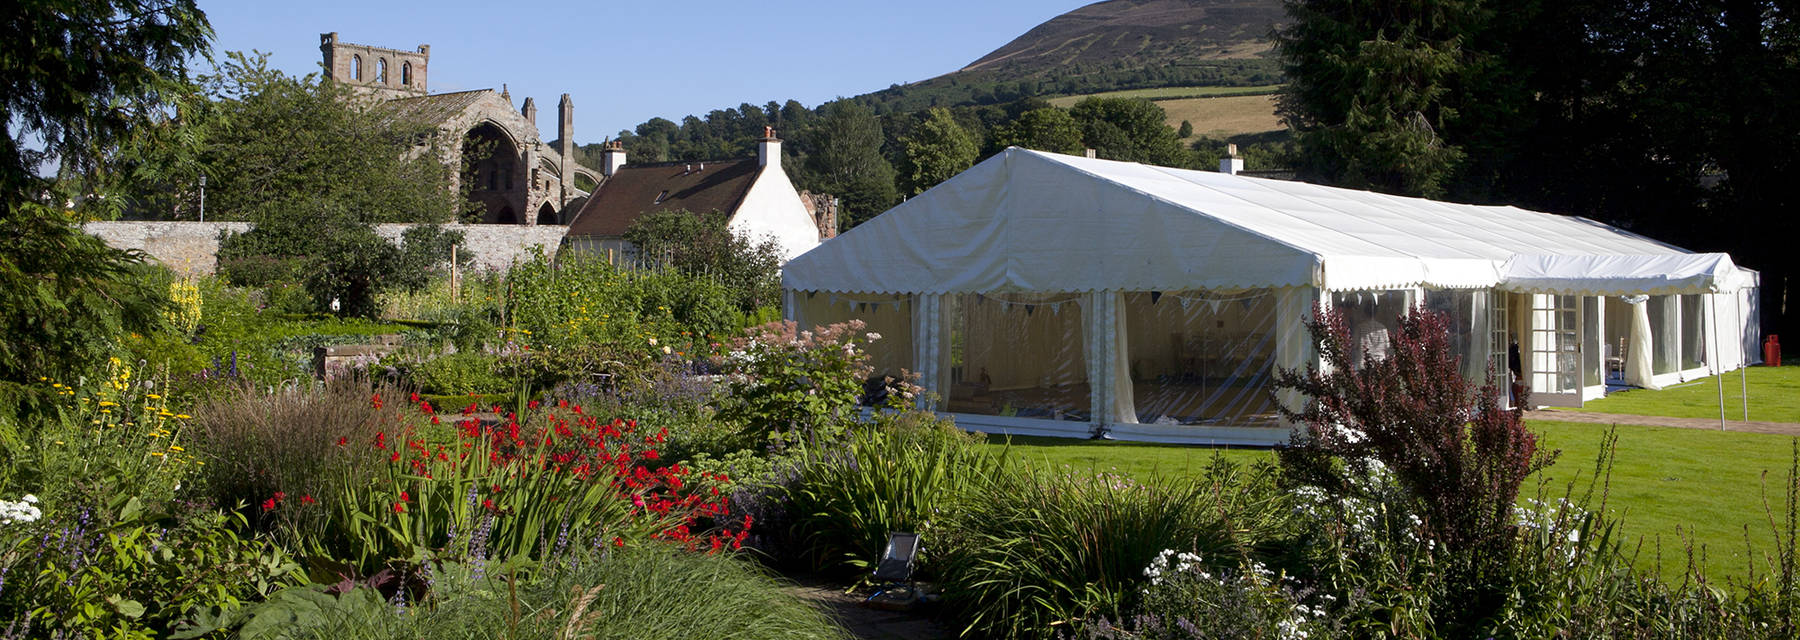 Marquee in Harmony Garden